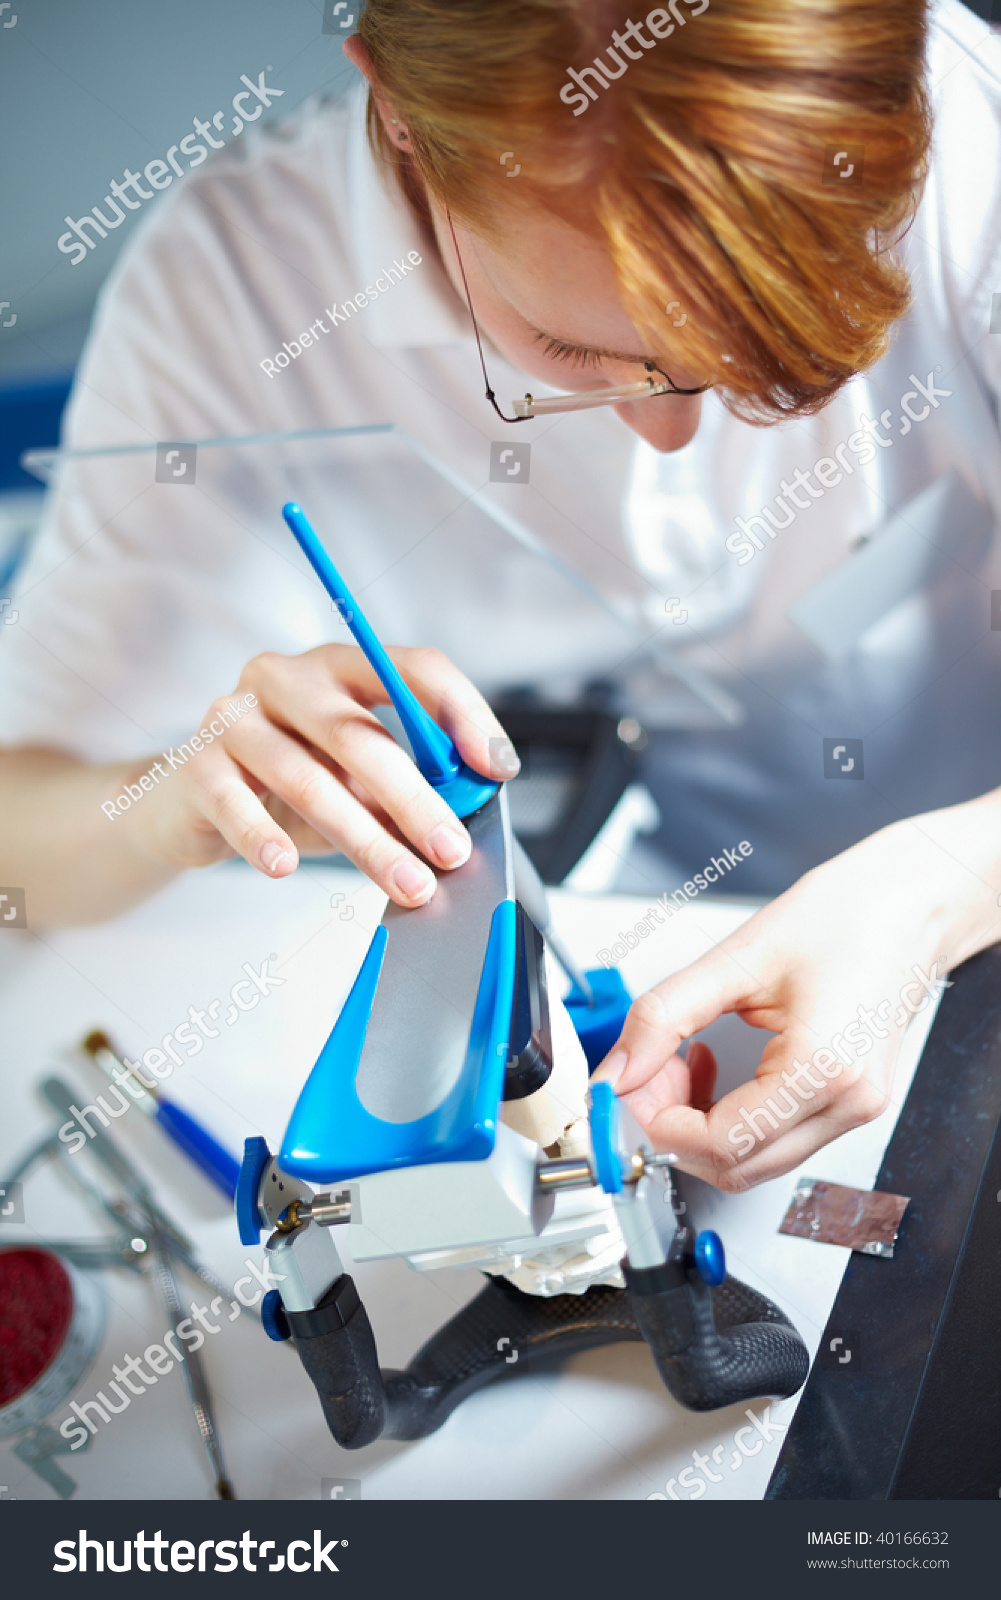 how to become a dental lab technician salary